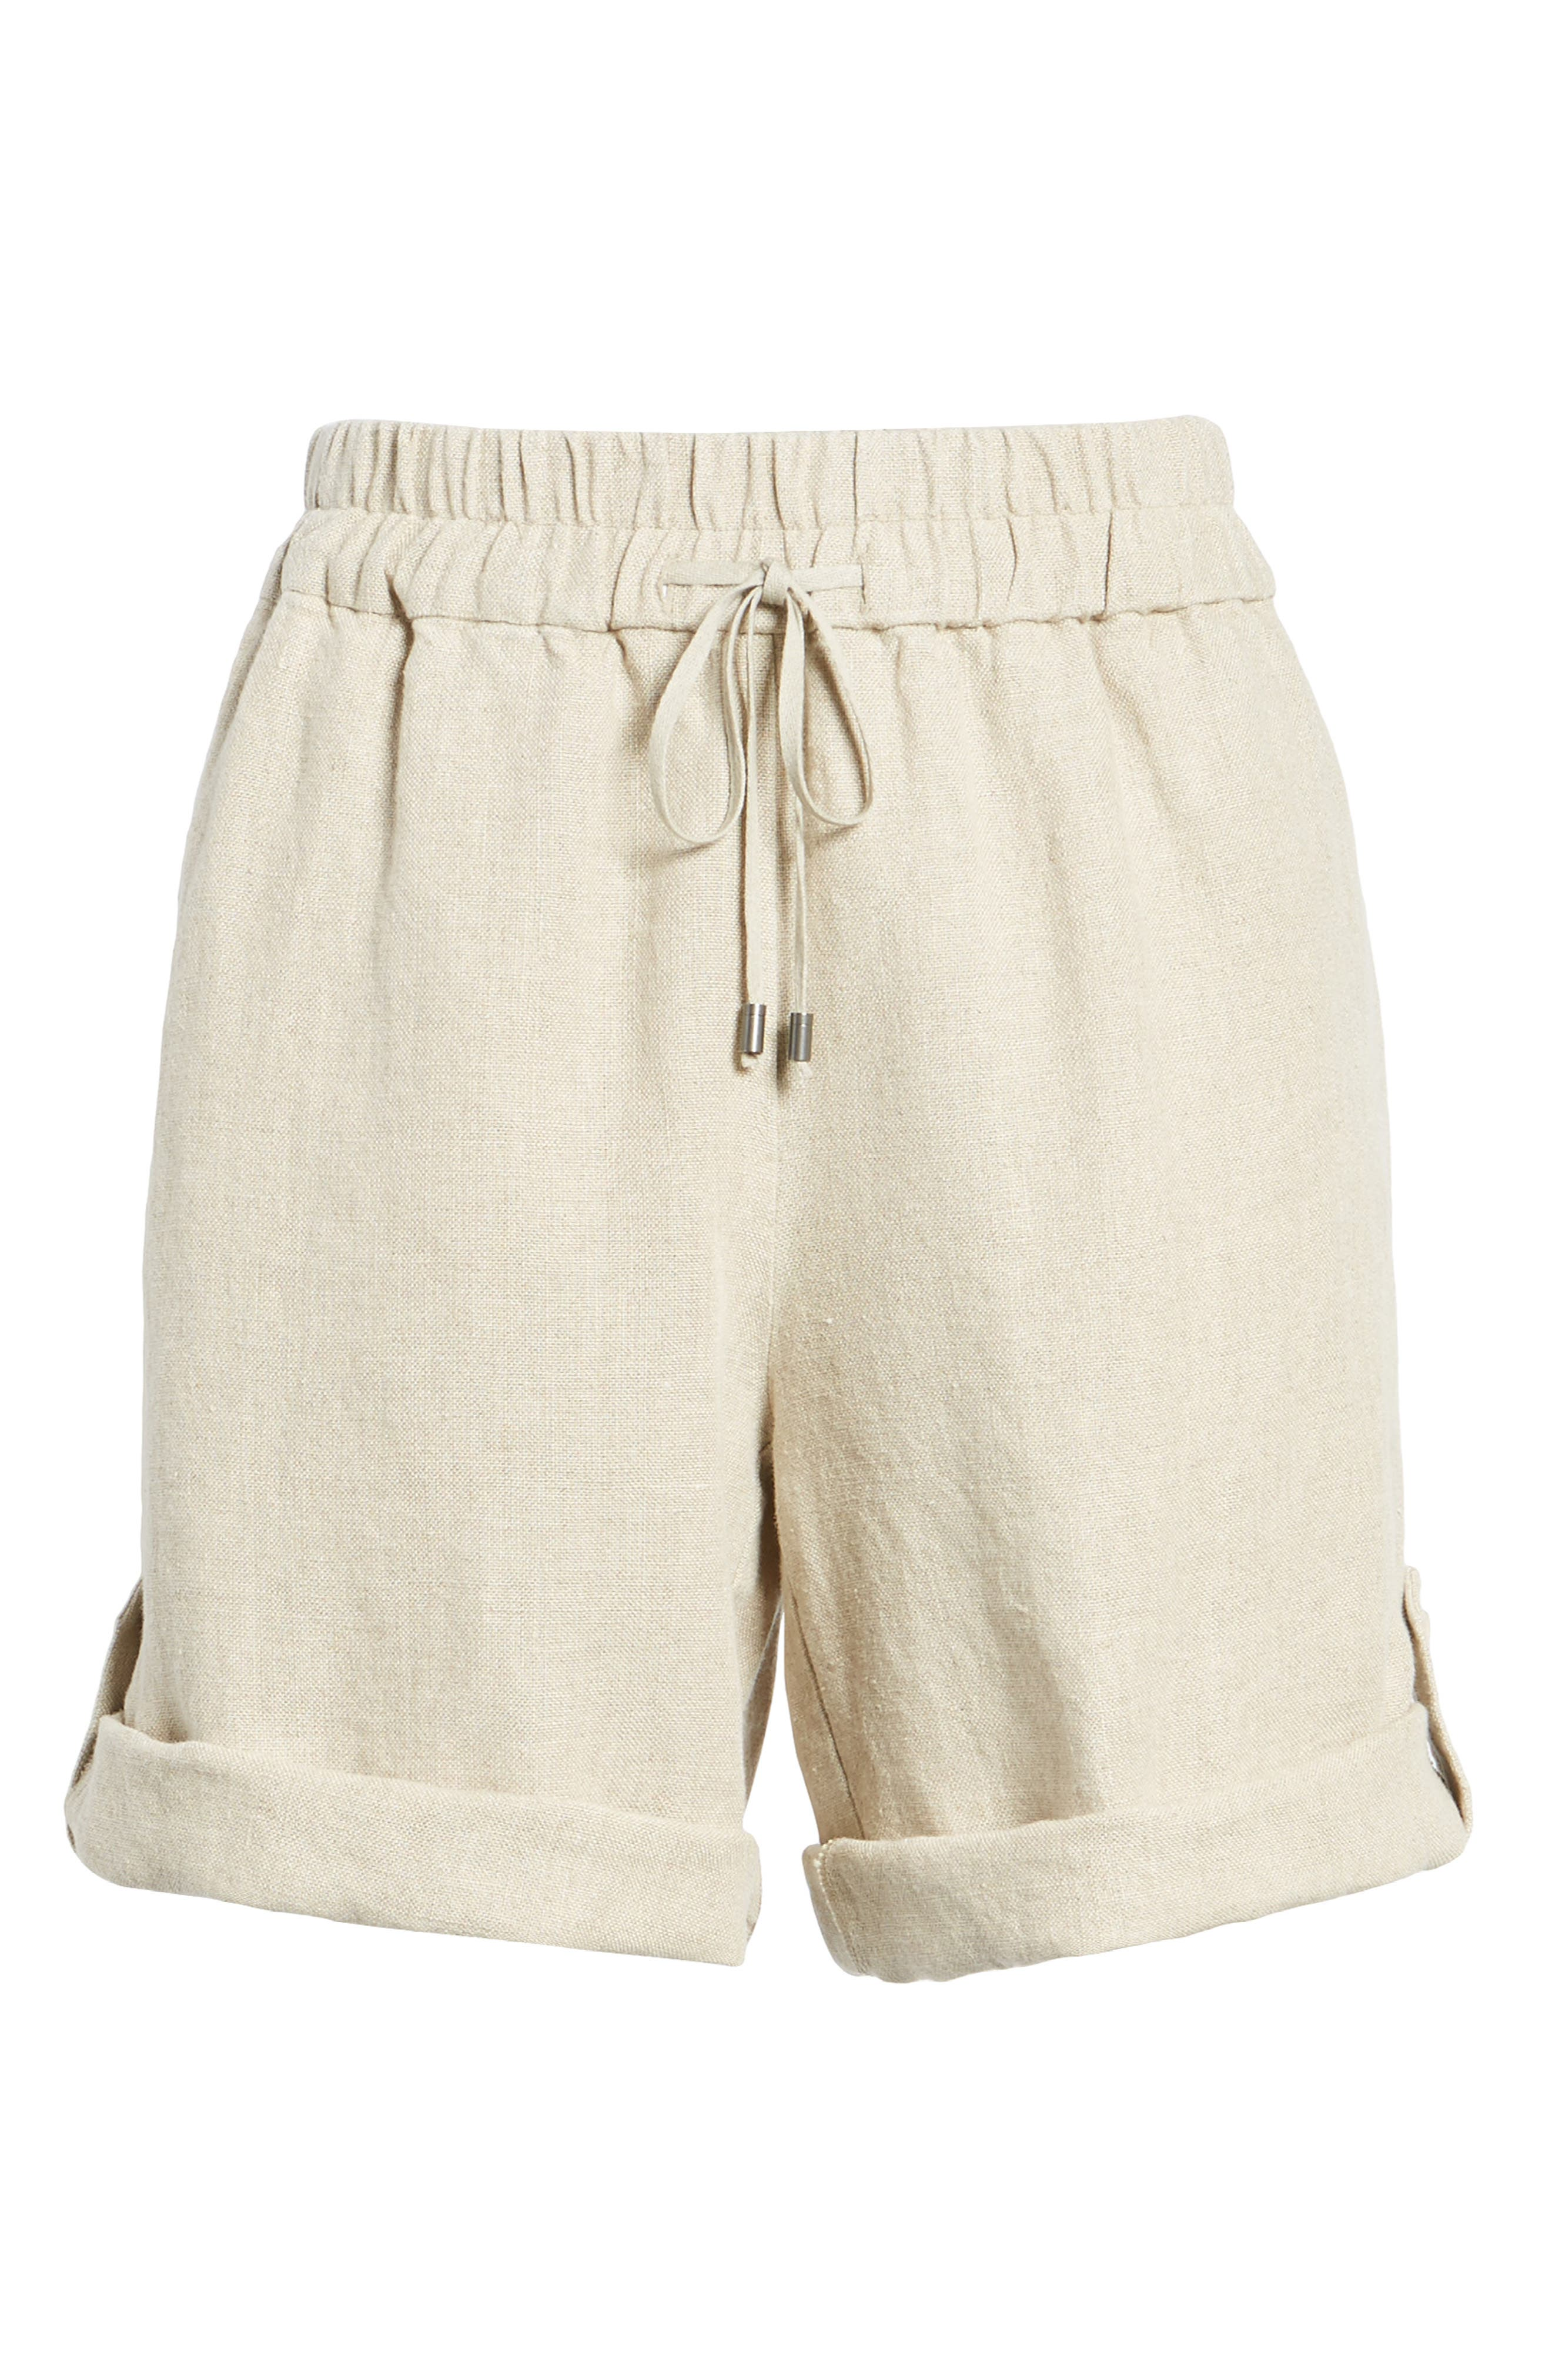 Rolled Organic Linen Shorts,                             Alternate thumbnail 6, color,                             Undyed Natural